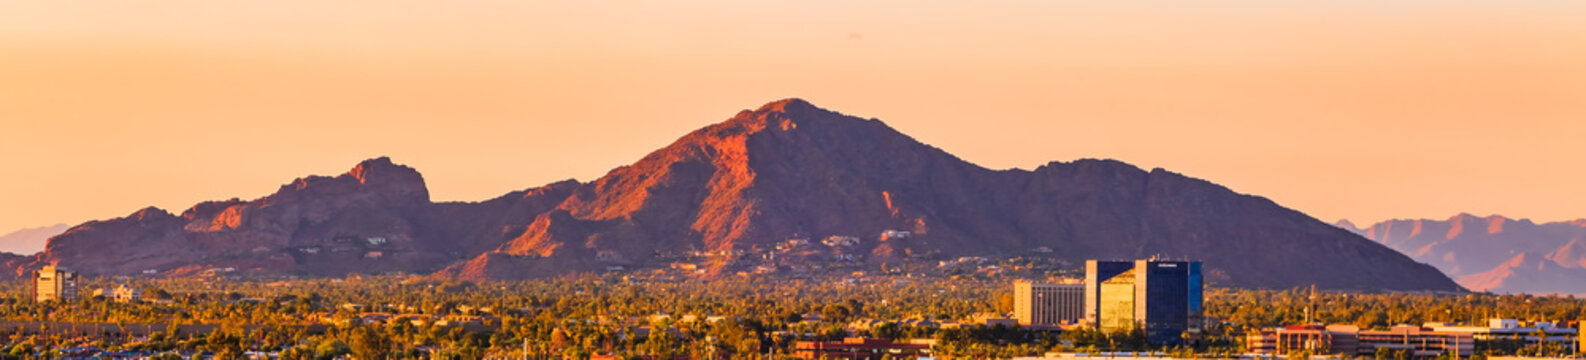 downtown Phoenix, Arizona skyline with famous camelback mountain at sunset